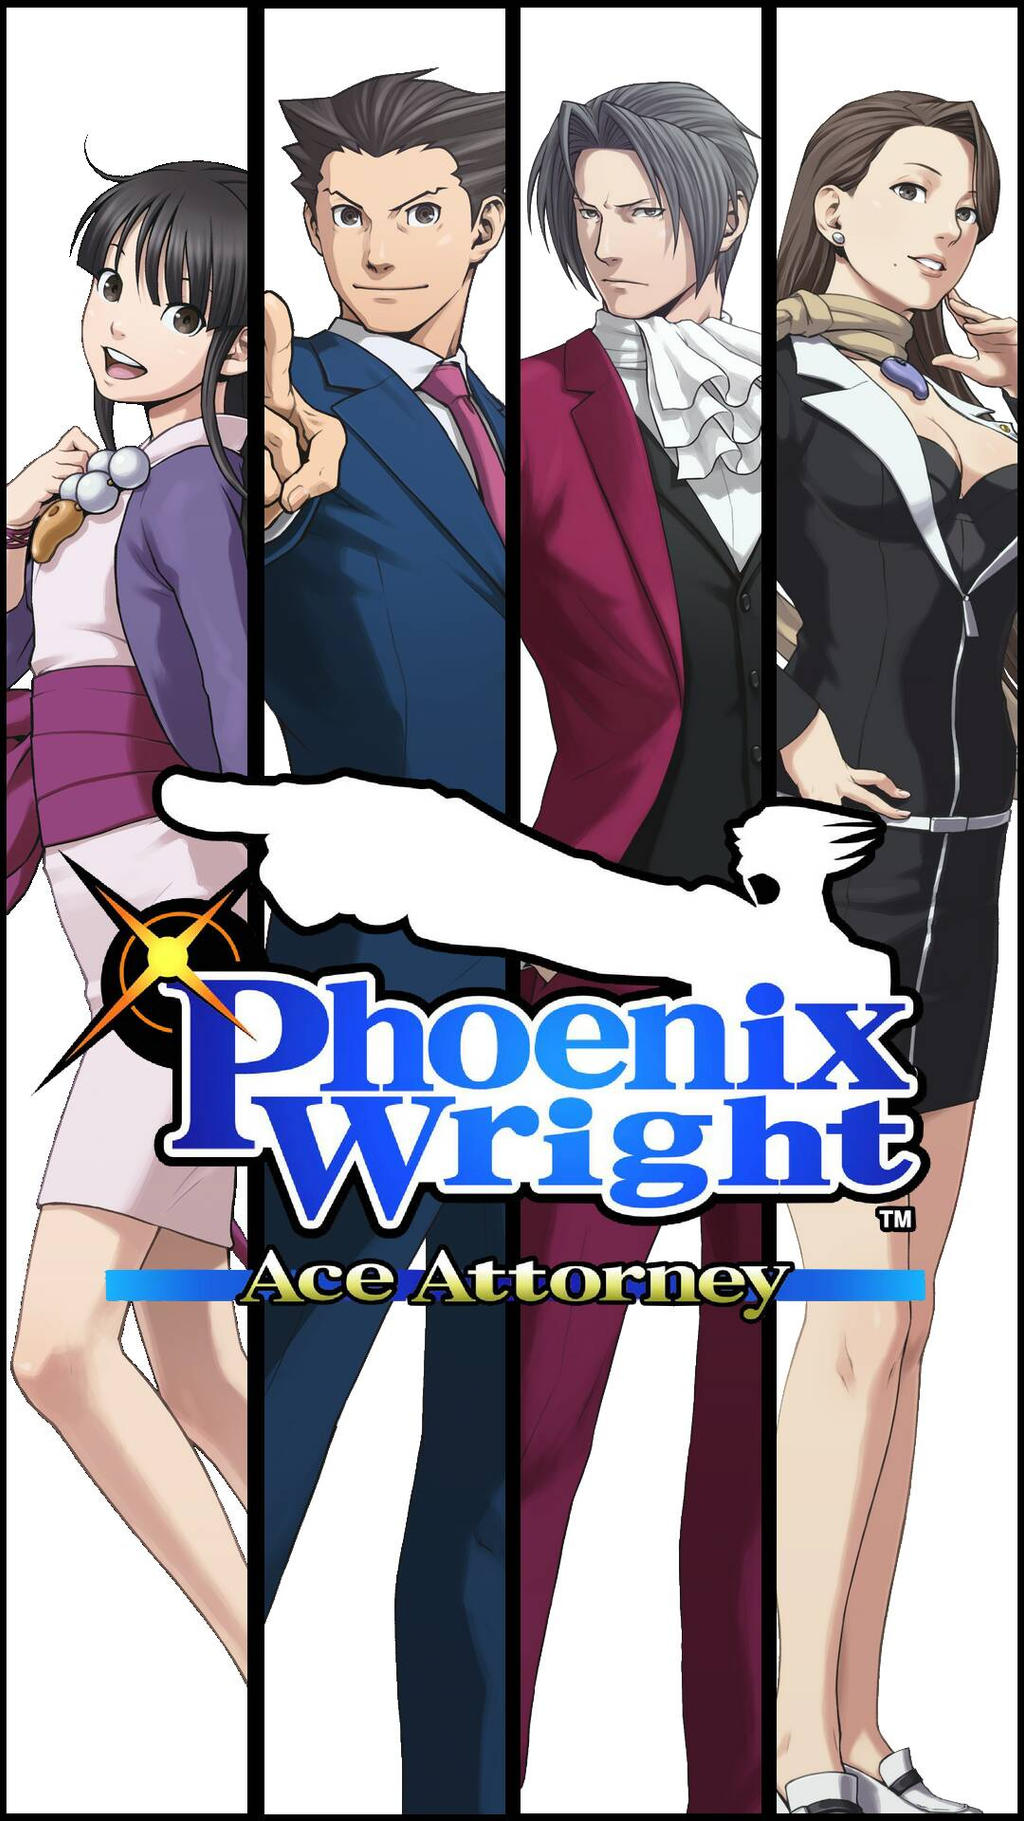 Phoenix Wright Ace Attorney Wallpaper By Gmivan On Deviantart